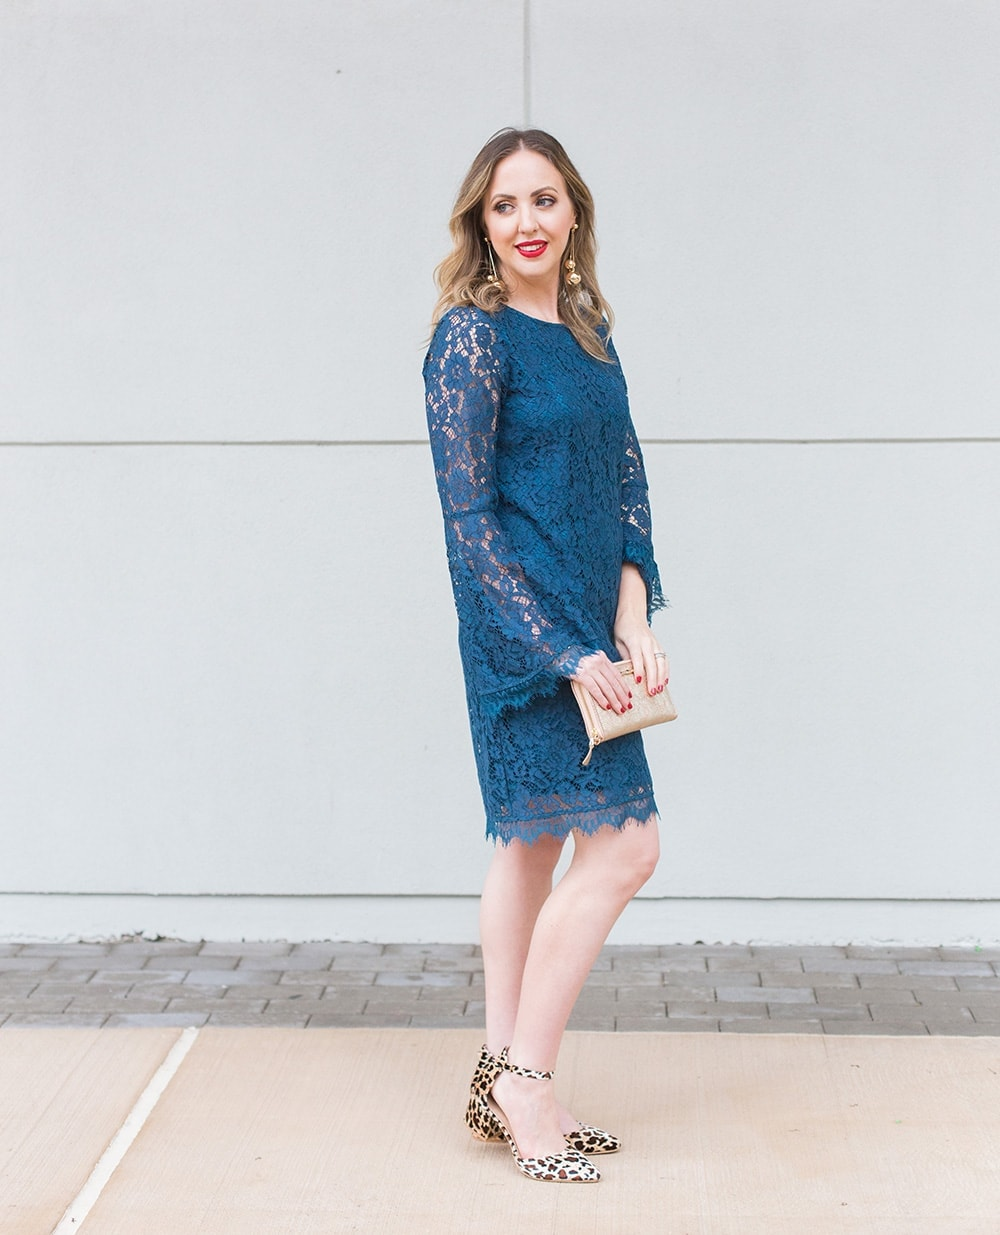 blue lace bell sleeve dress with gold earrings, red lipstick, gold clutch and leopard print shoes. Houston blogger Meg O. on the Go